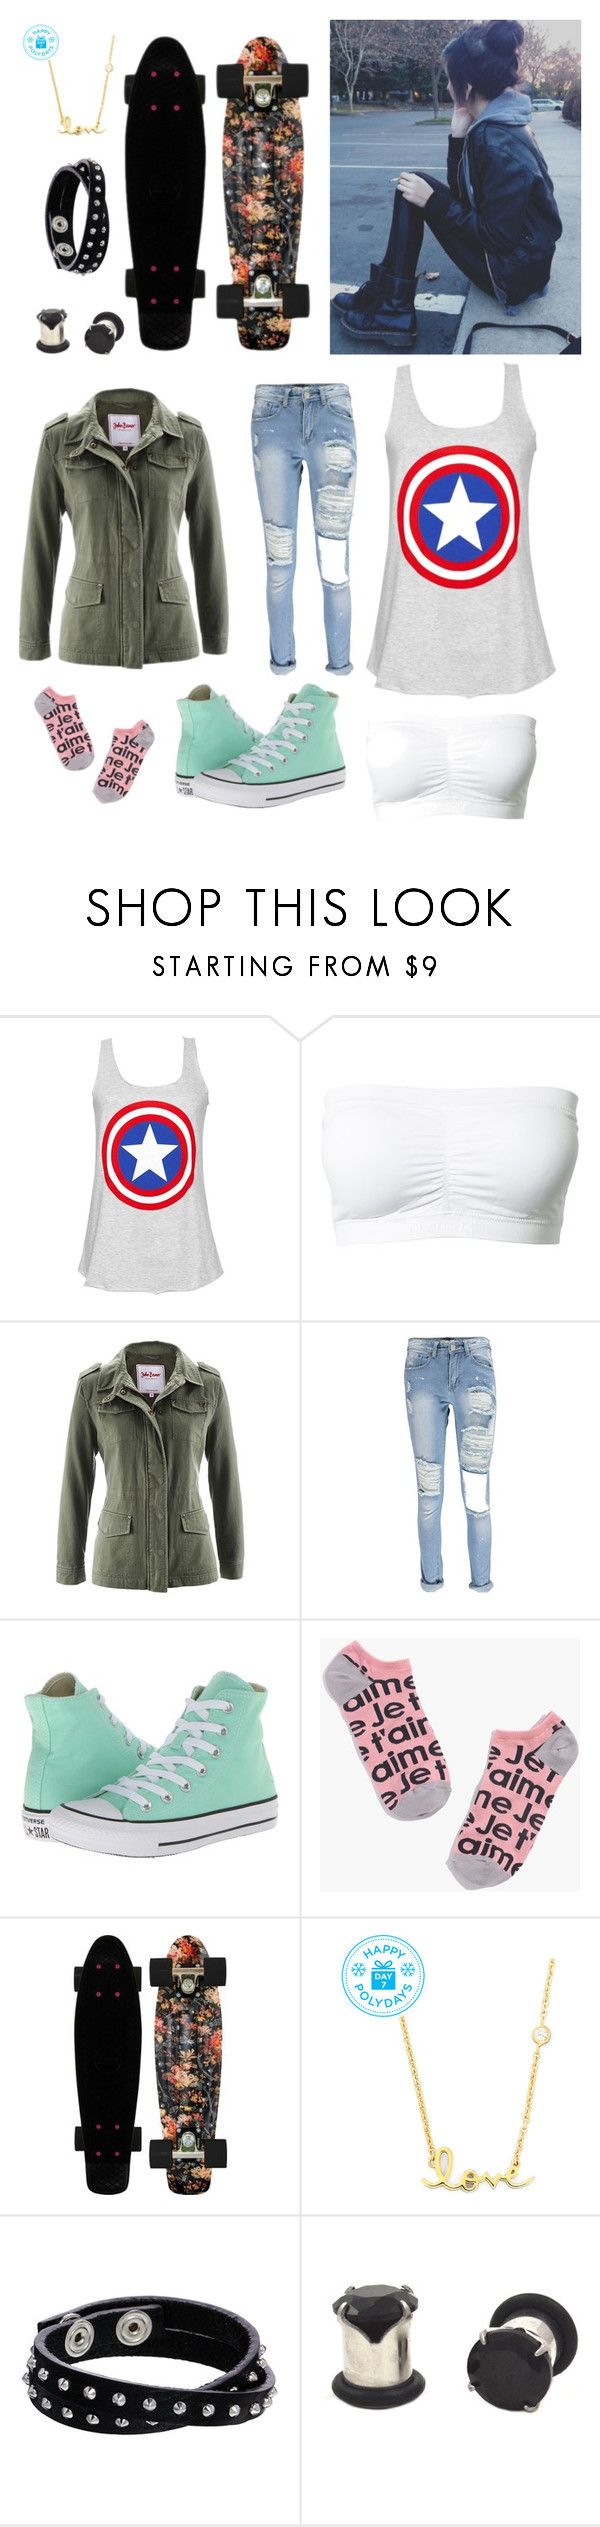 """Danny Smith"" by nationalnerd ❤ liked on Polyvore featuring Magic, Boohoo, Converse, Madewell, Sydney Evan and Diesel"